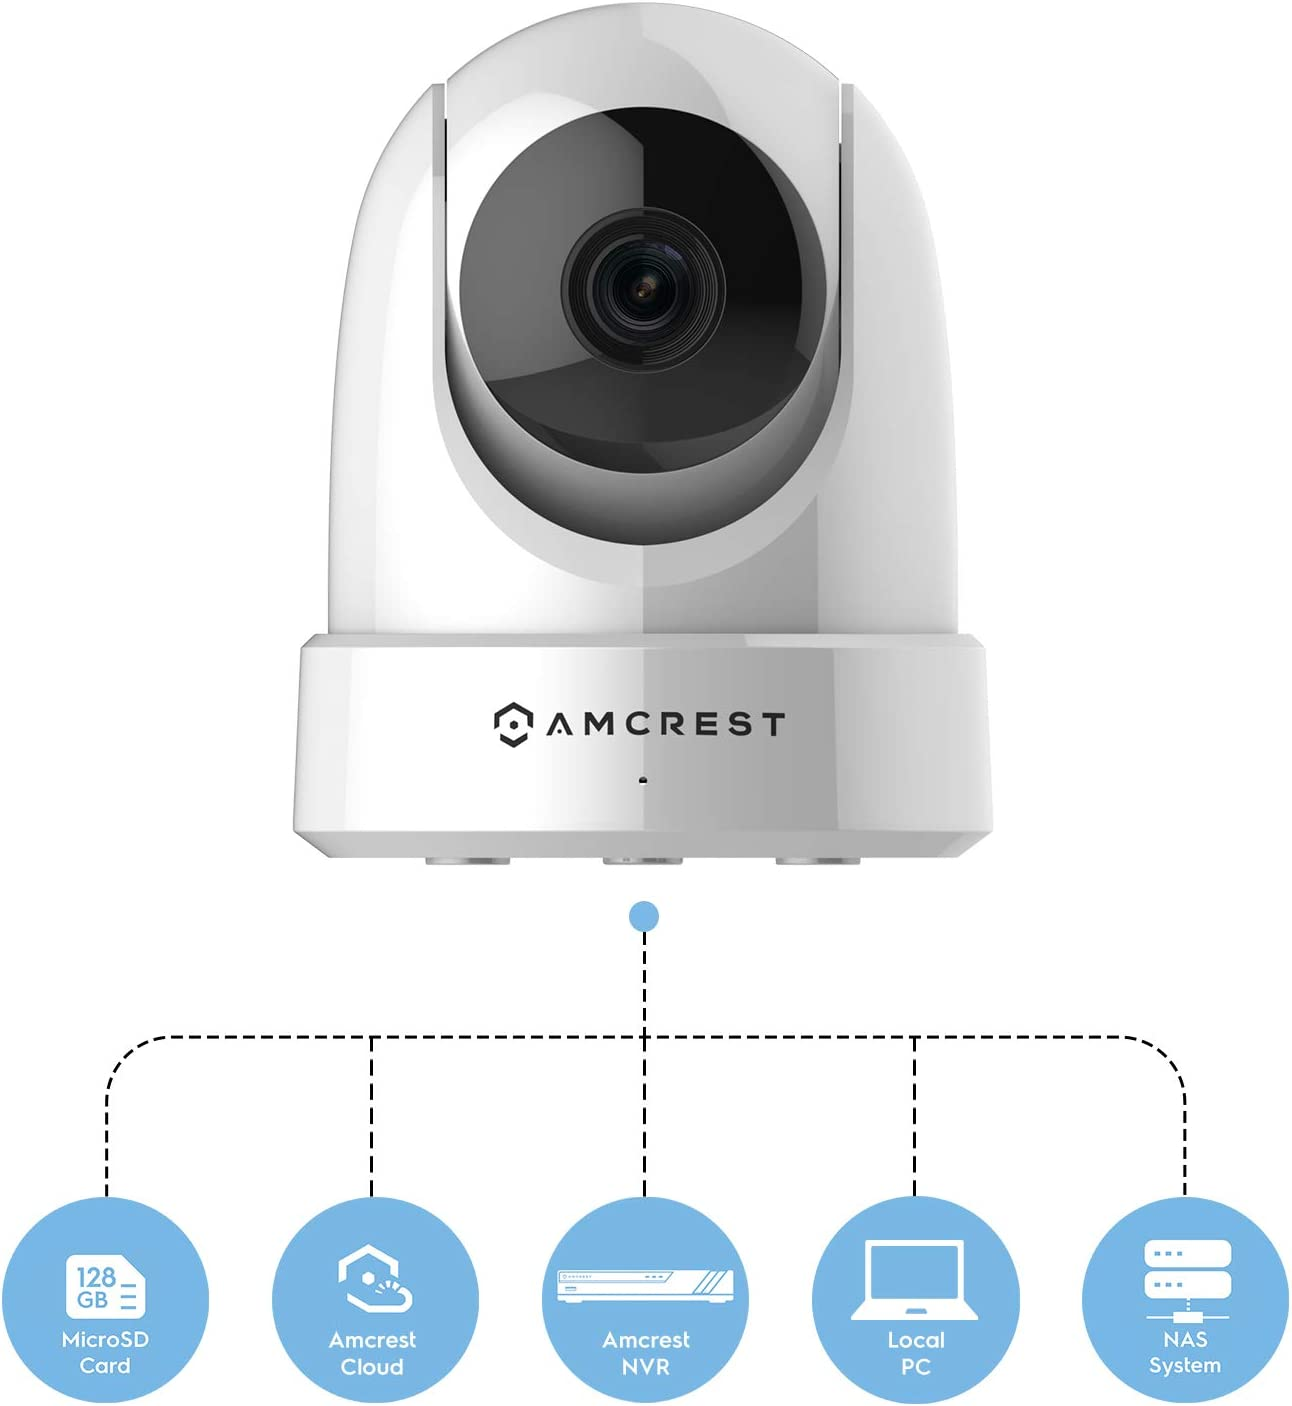 Wide 120/° FOV 2PACK-IP4M-1051W 4-Megapixel @~20FPS Remote Viewing Security IP Camera with Pan//Tilt Dual-Band 5ghz//2.4ghz Two-Way Audio 2-Pack Amcrest 4MP UltraHD Indoor WiFi Camera White